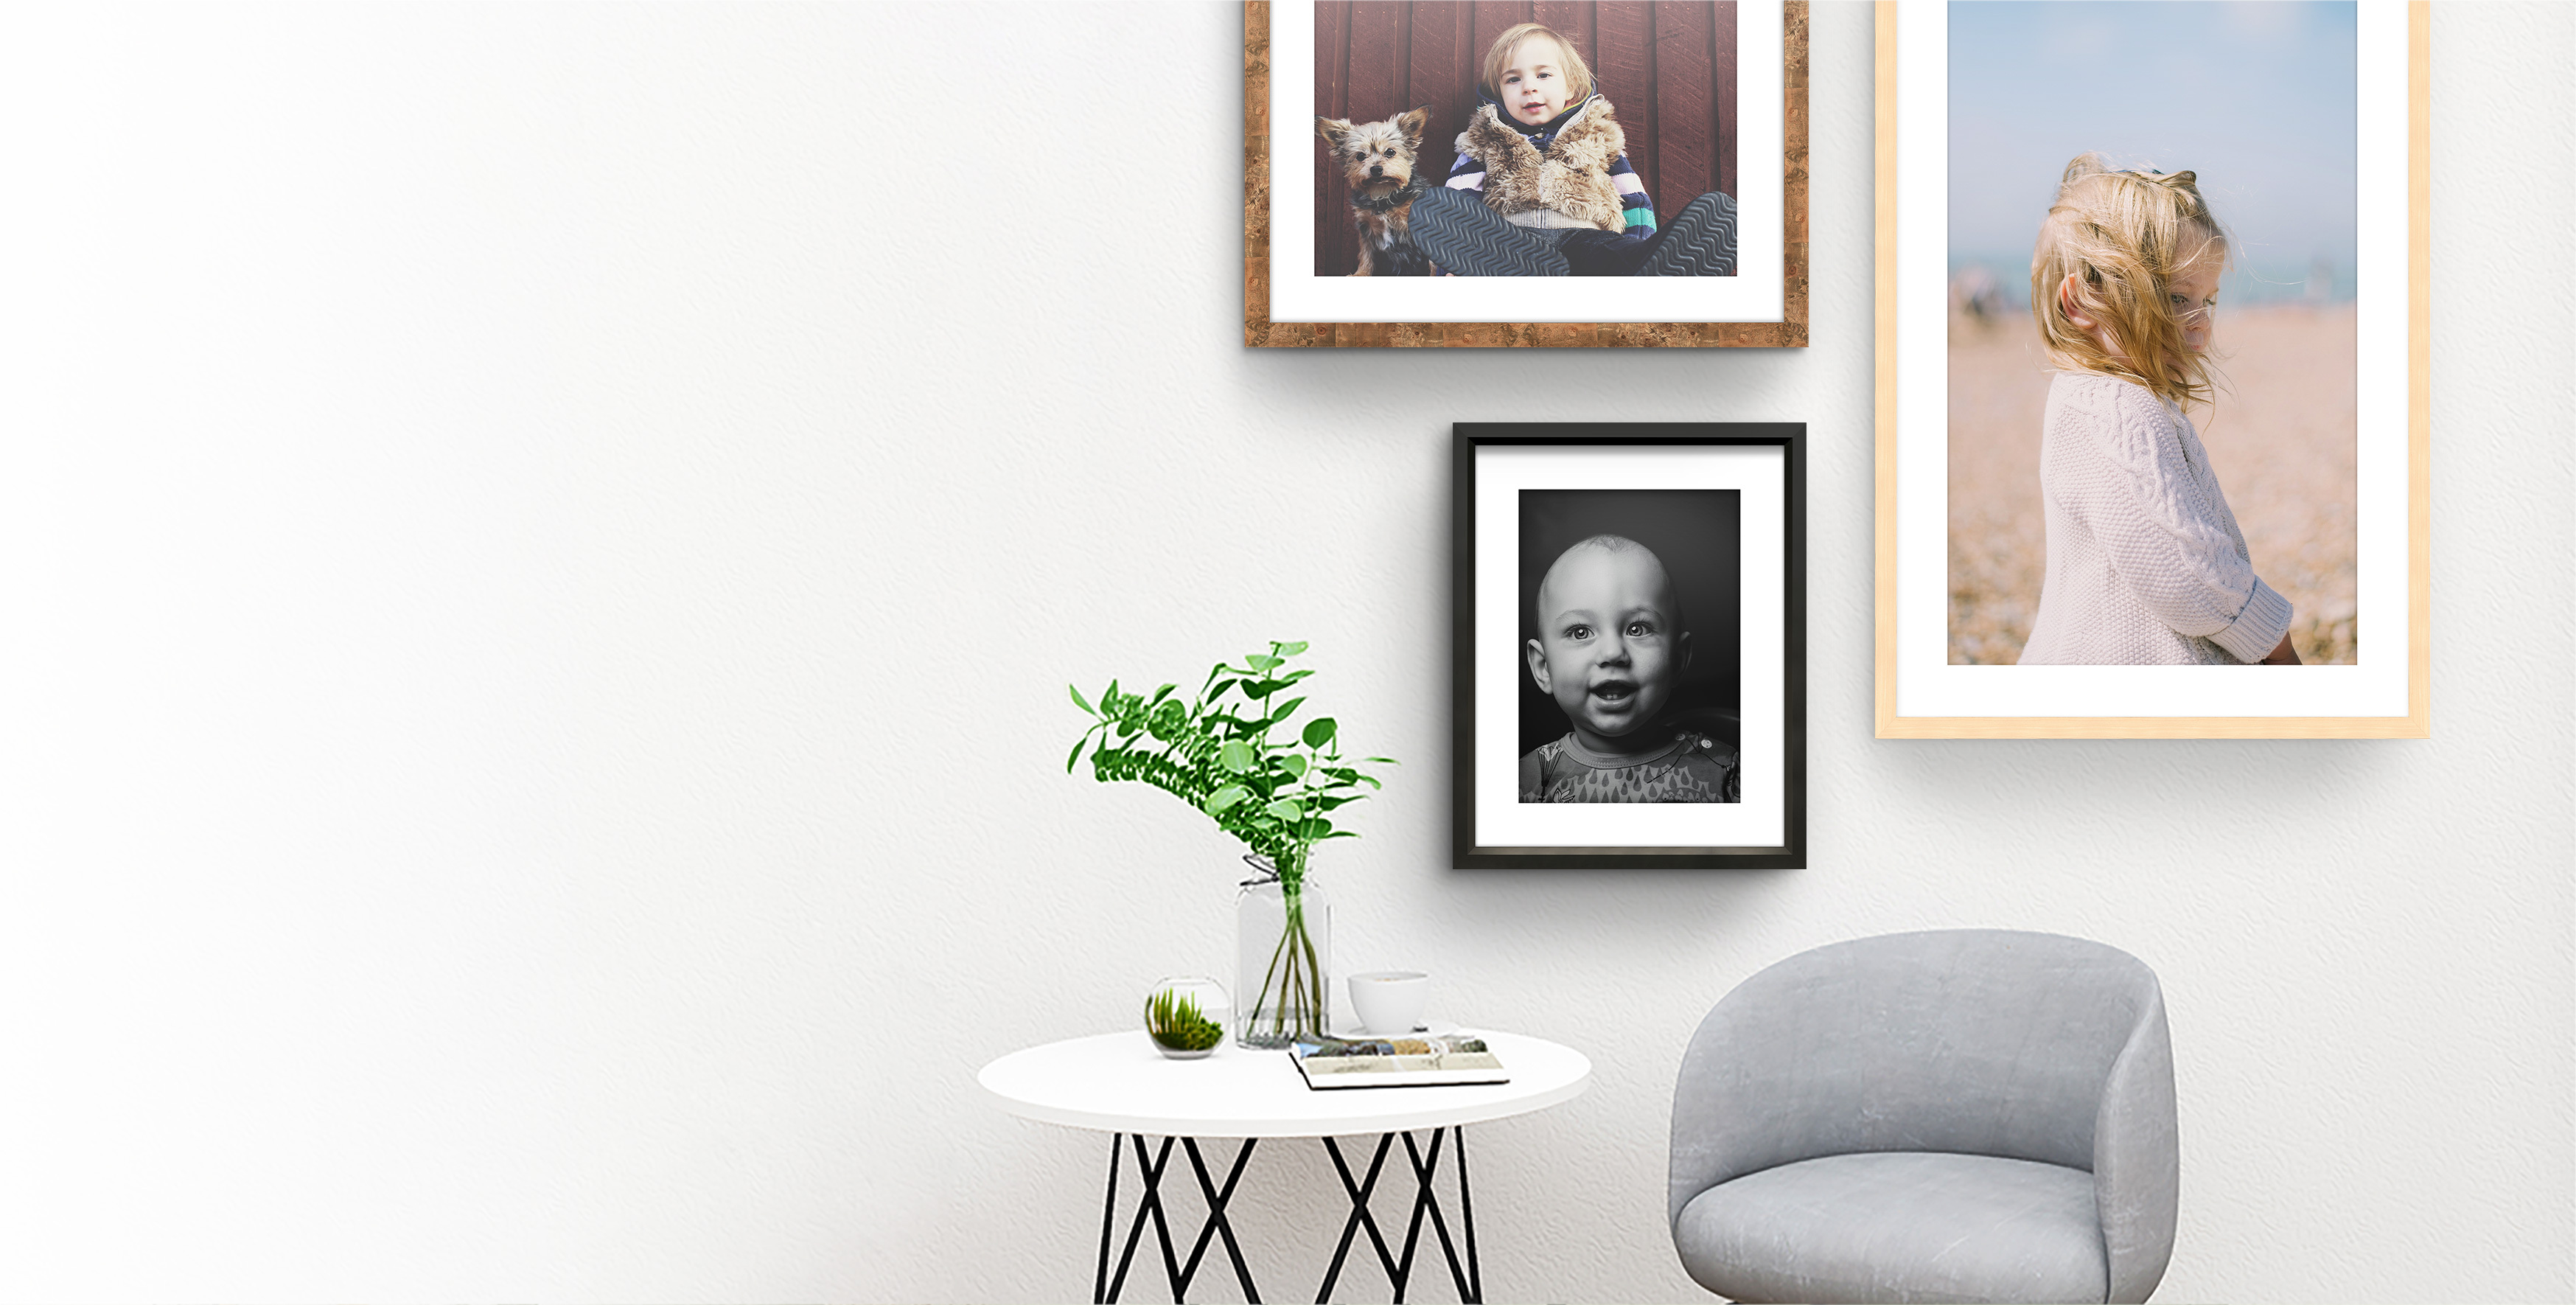 Michaels launches new online store for custom framing | Retail ...